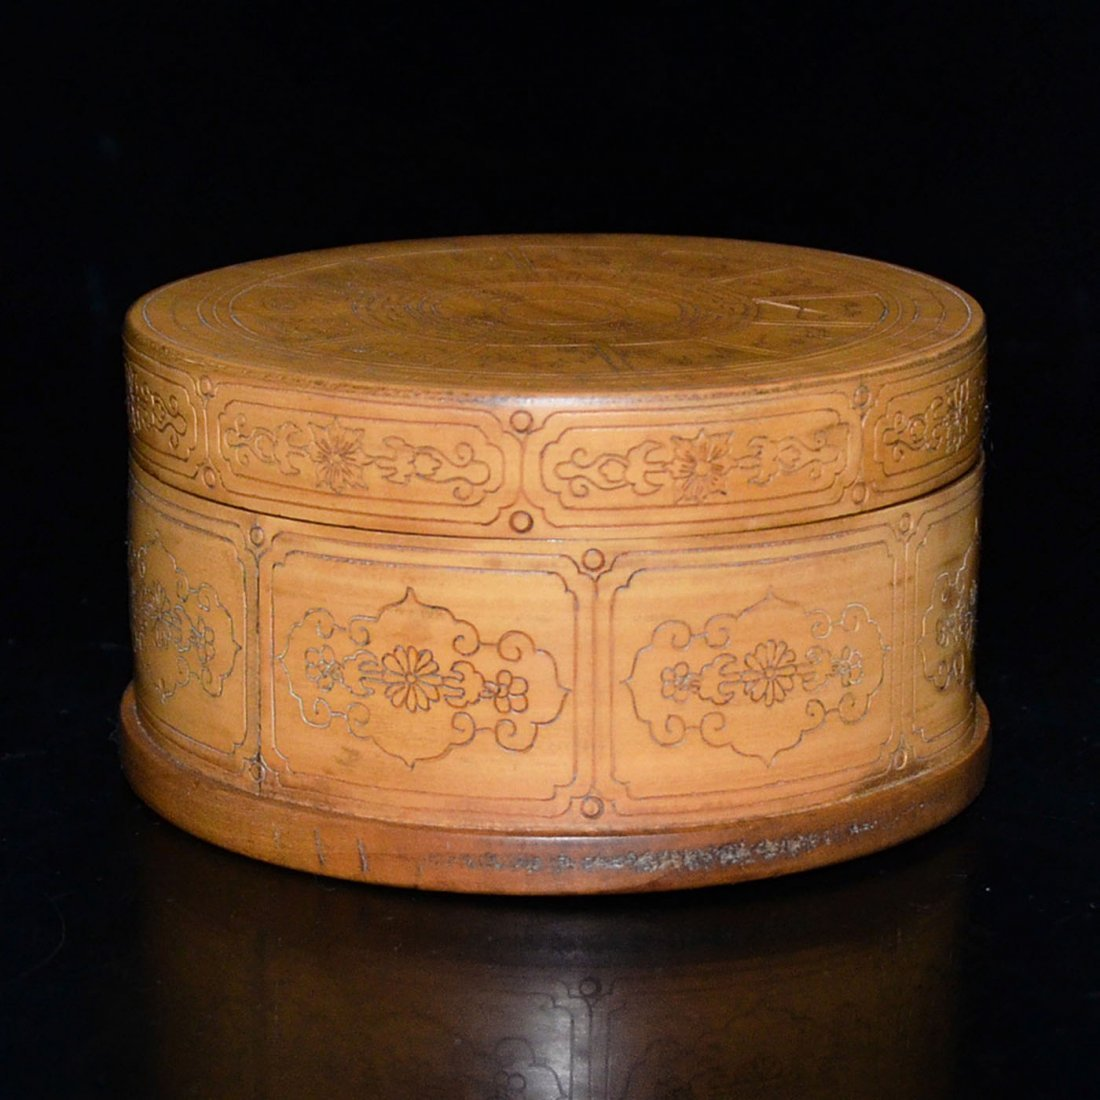 Bamboo Box with Twelve Zodiac Signs and Cover